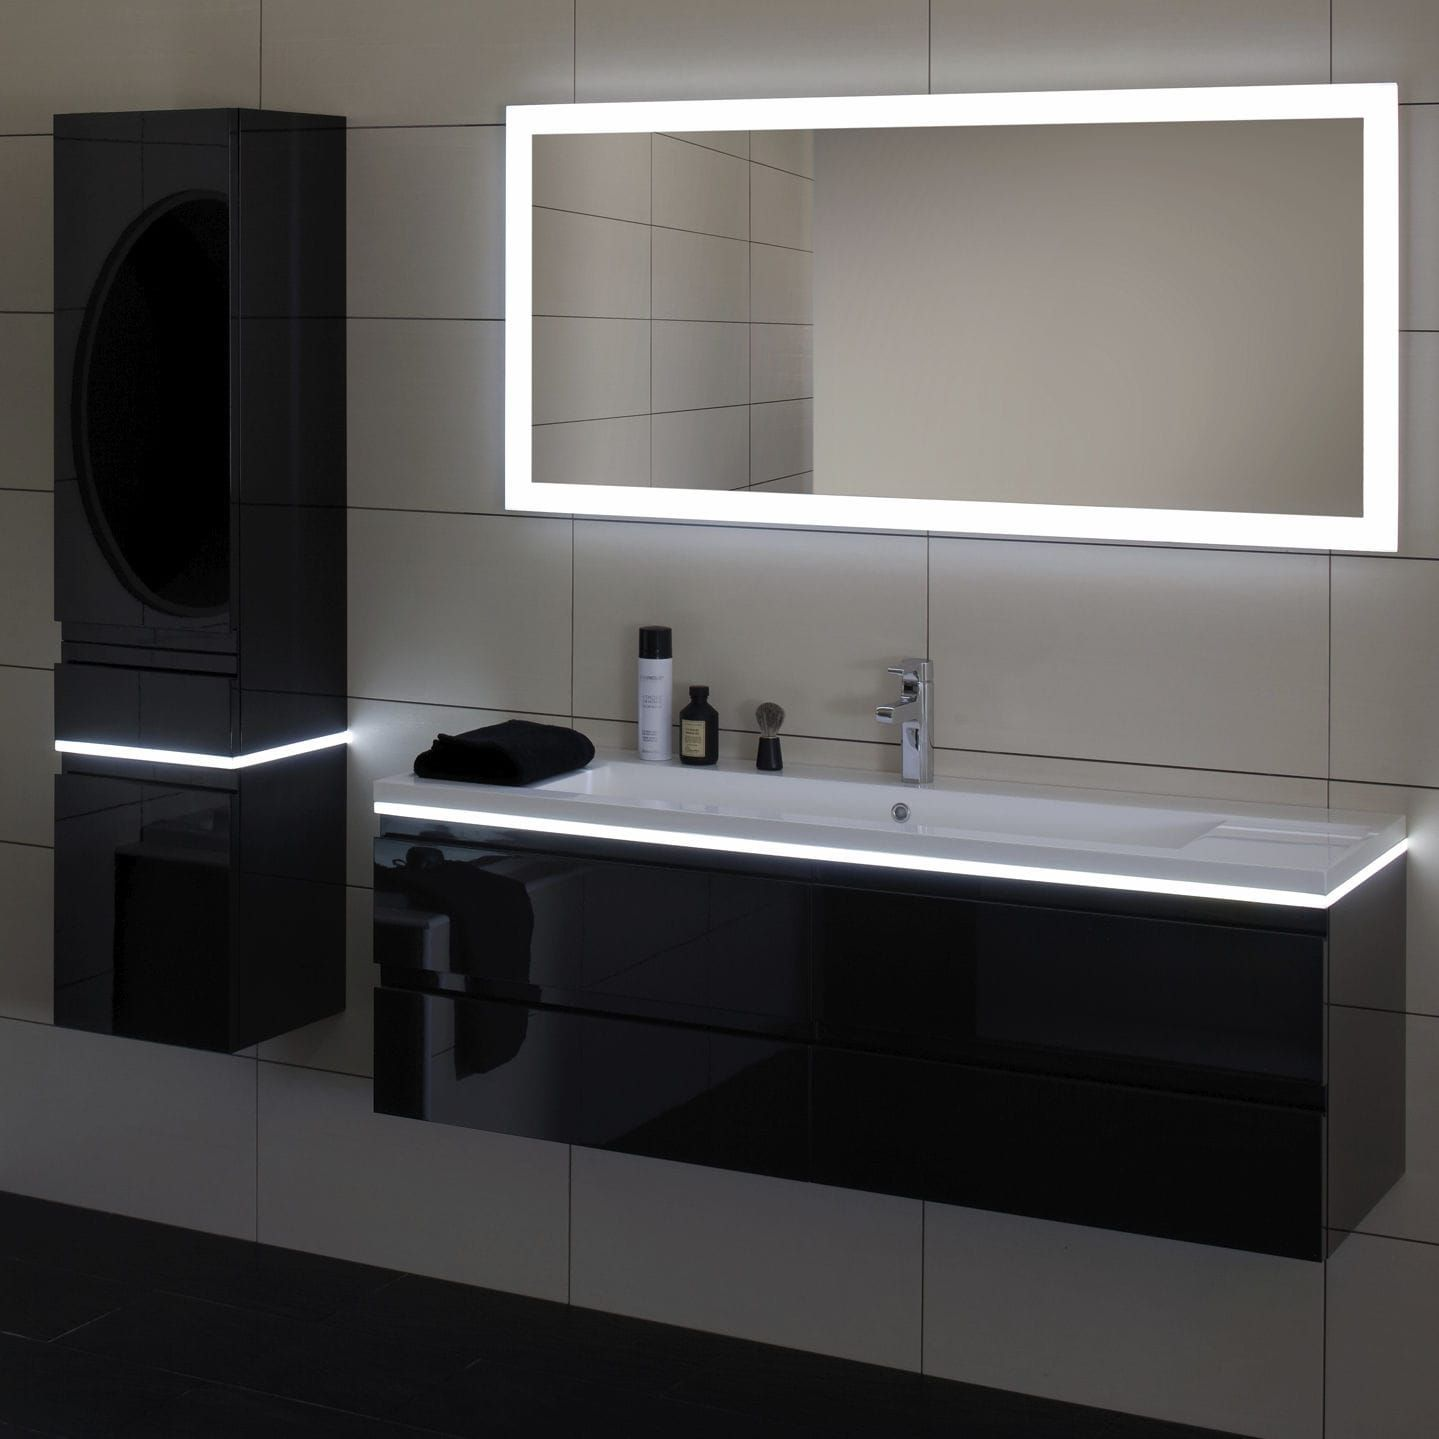 miroir mural contemporain rectangulaire lumineux. Black Bedroom Furniture Sets. Home Design Ideas